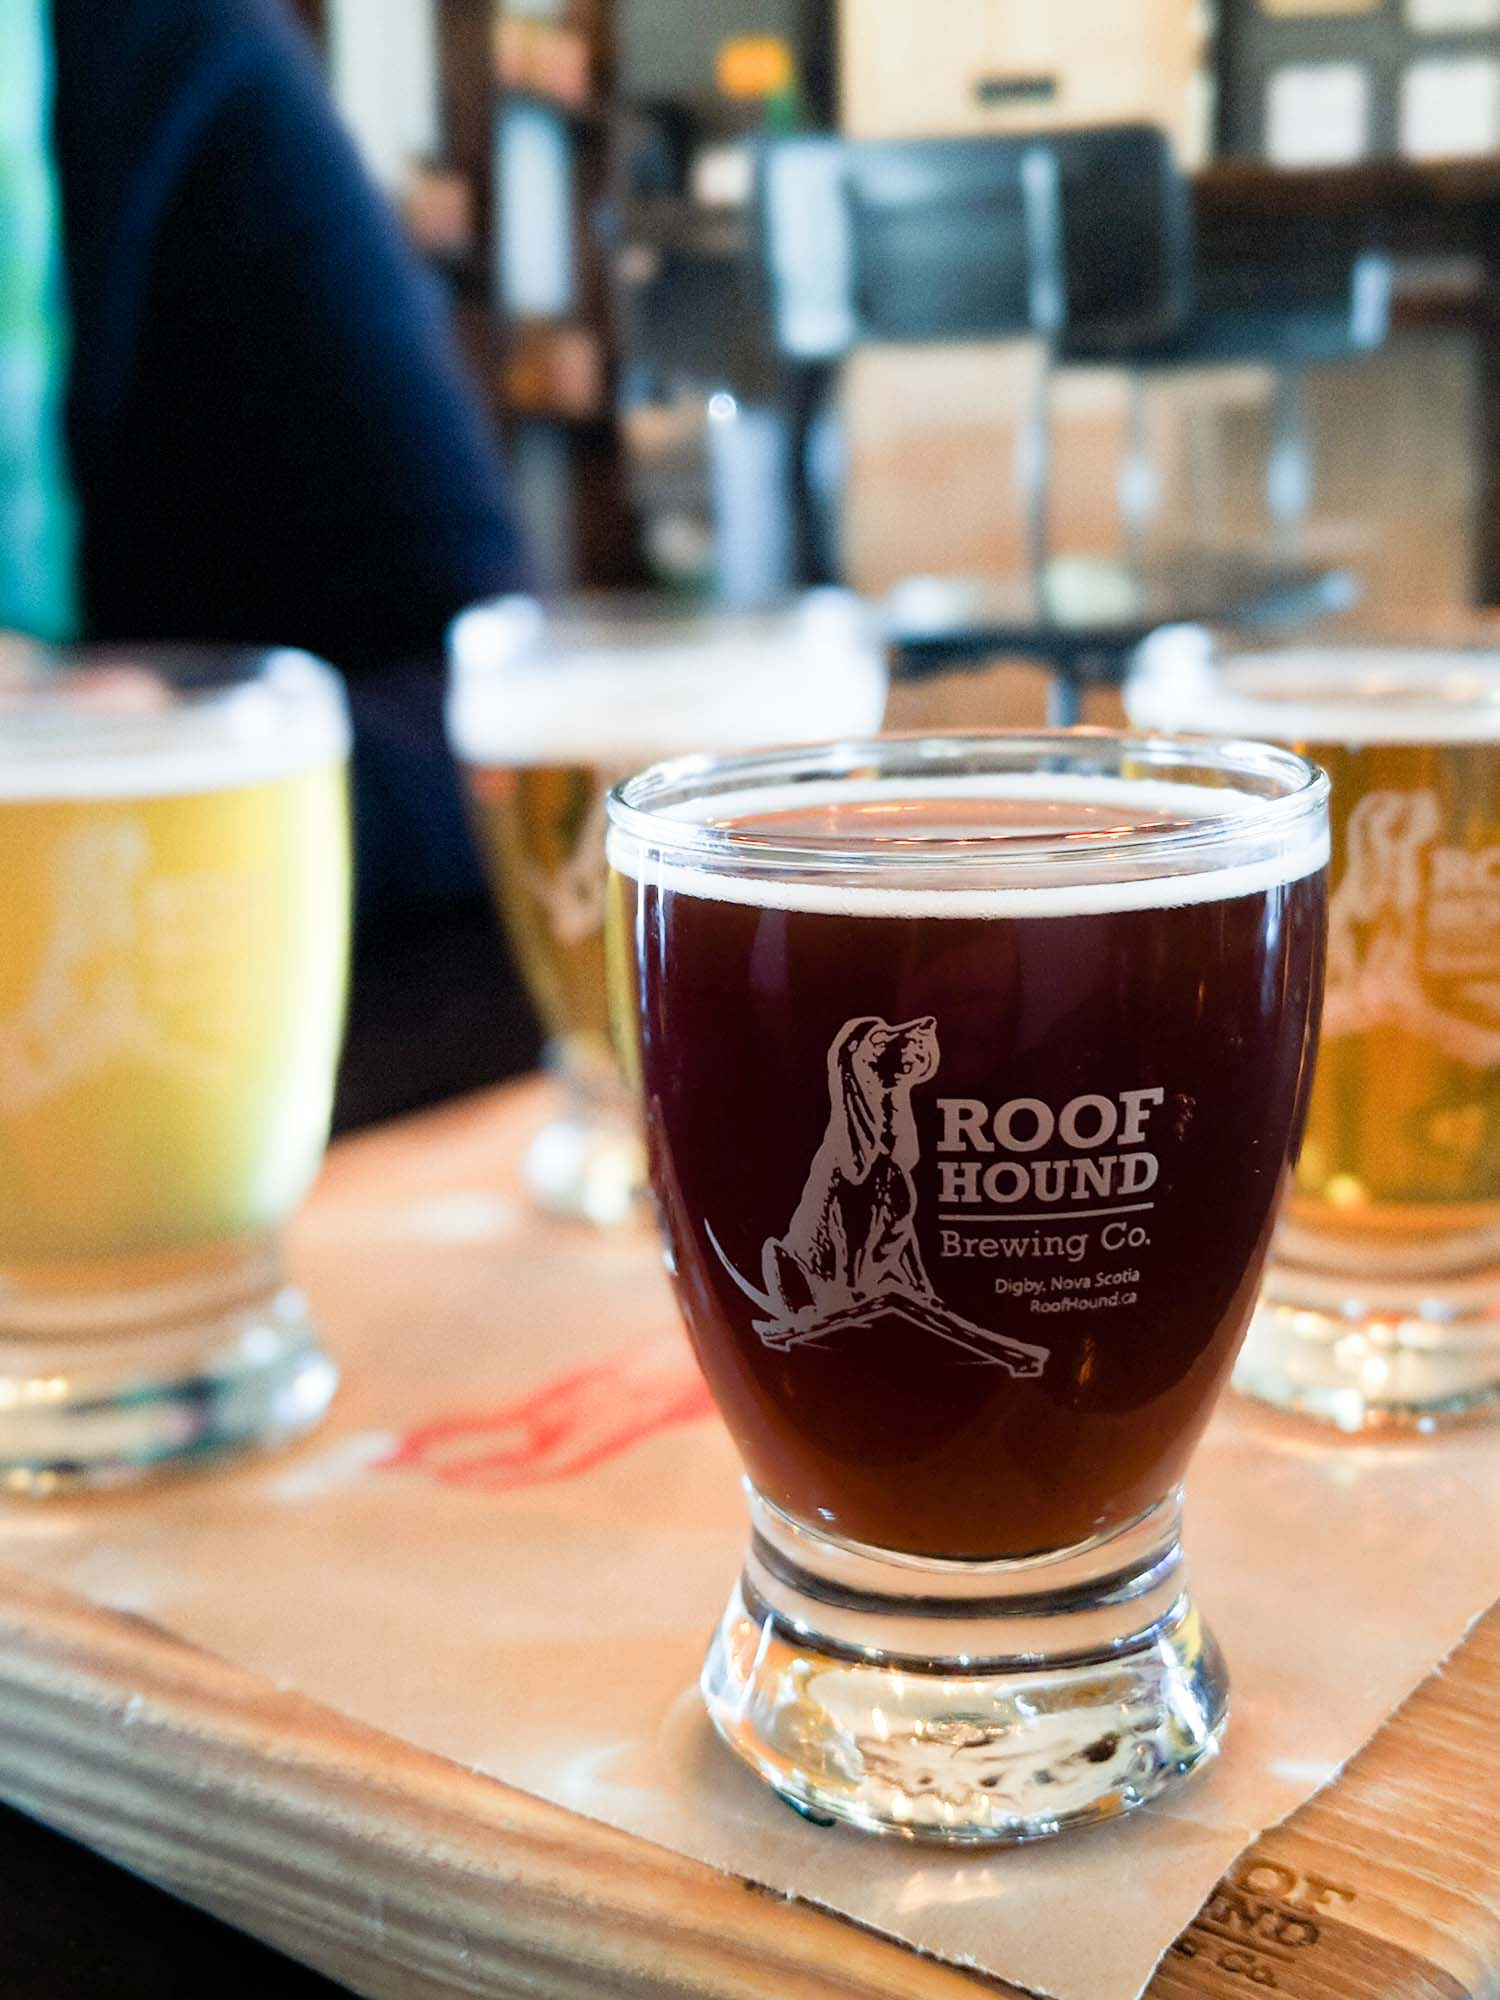 Flight of Roof Hound Craft Beer in Nova Scotia Canada